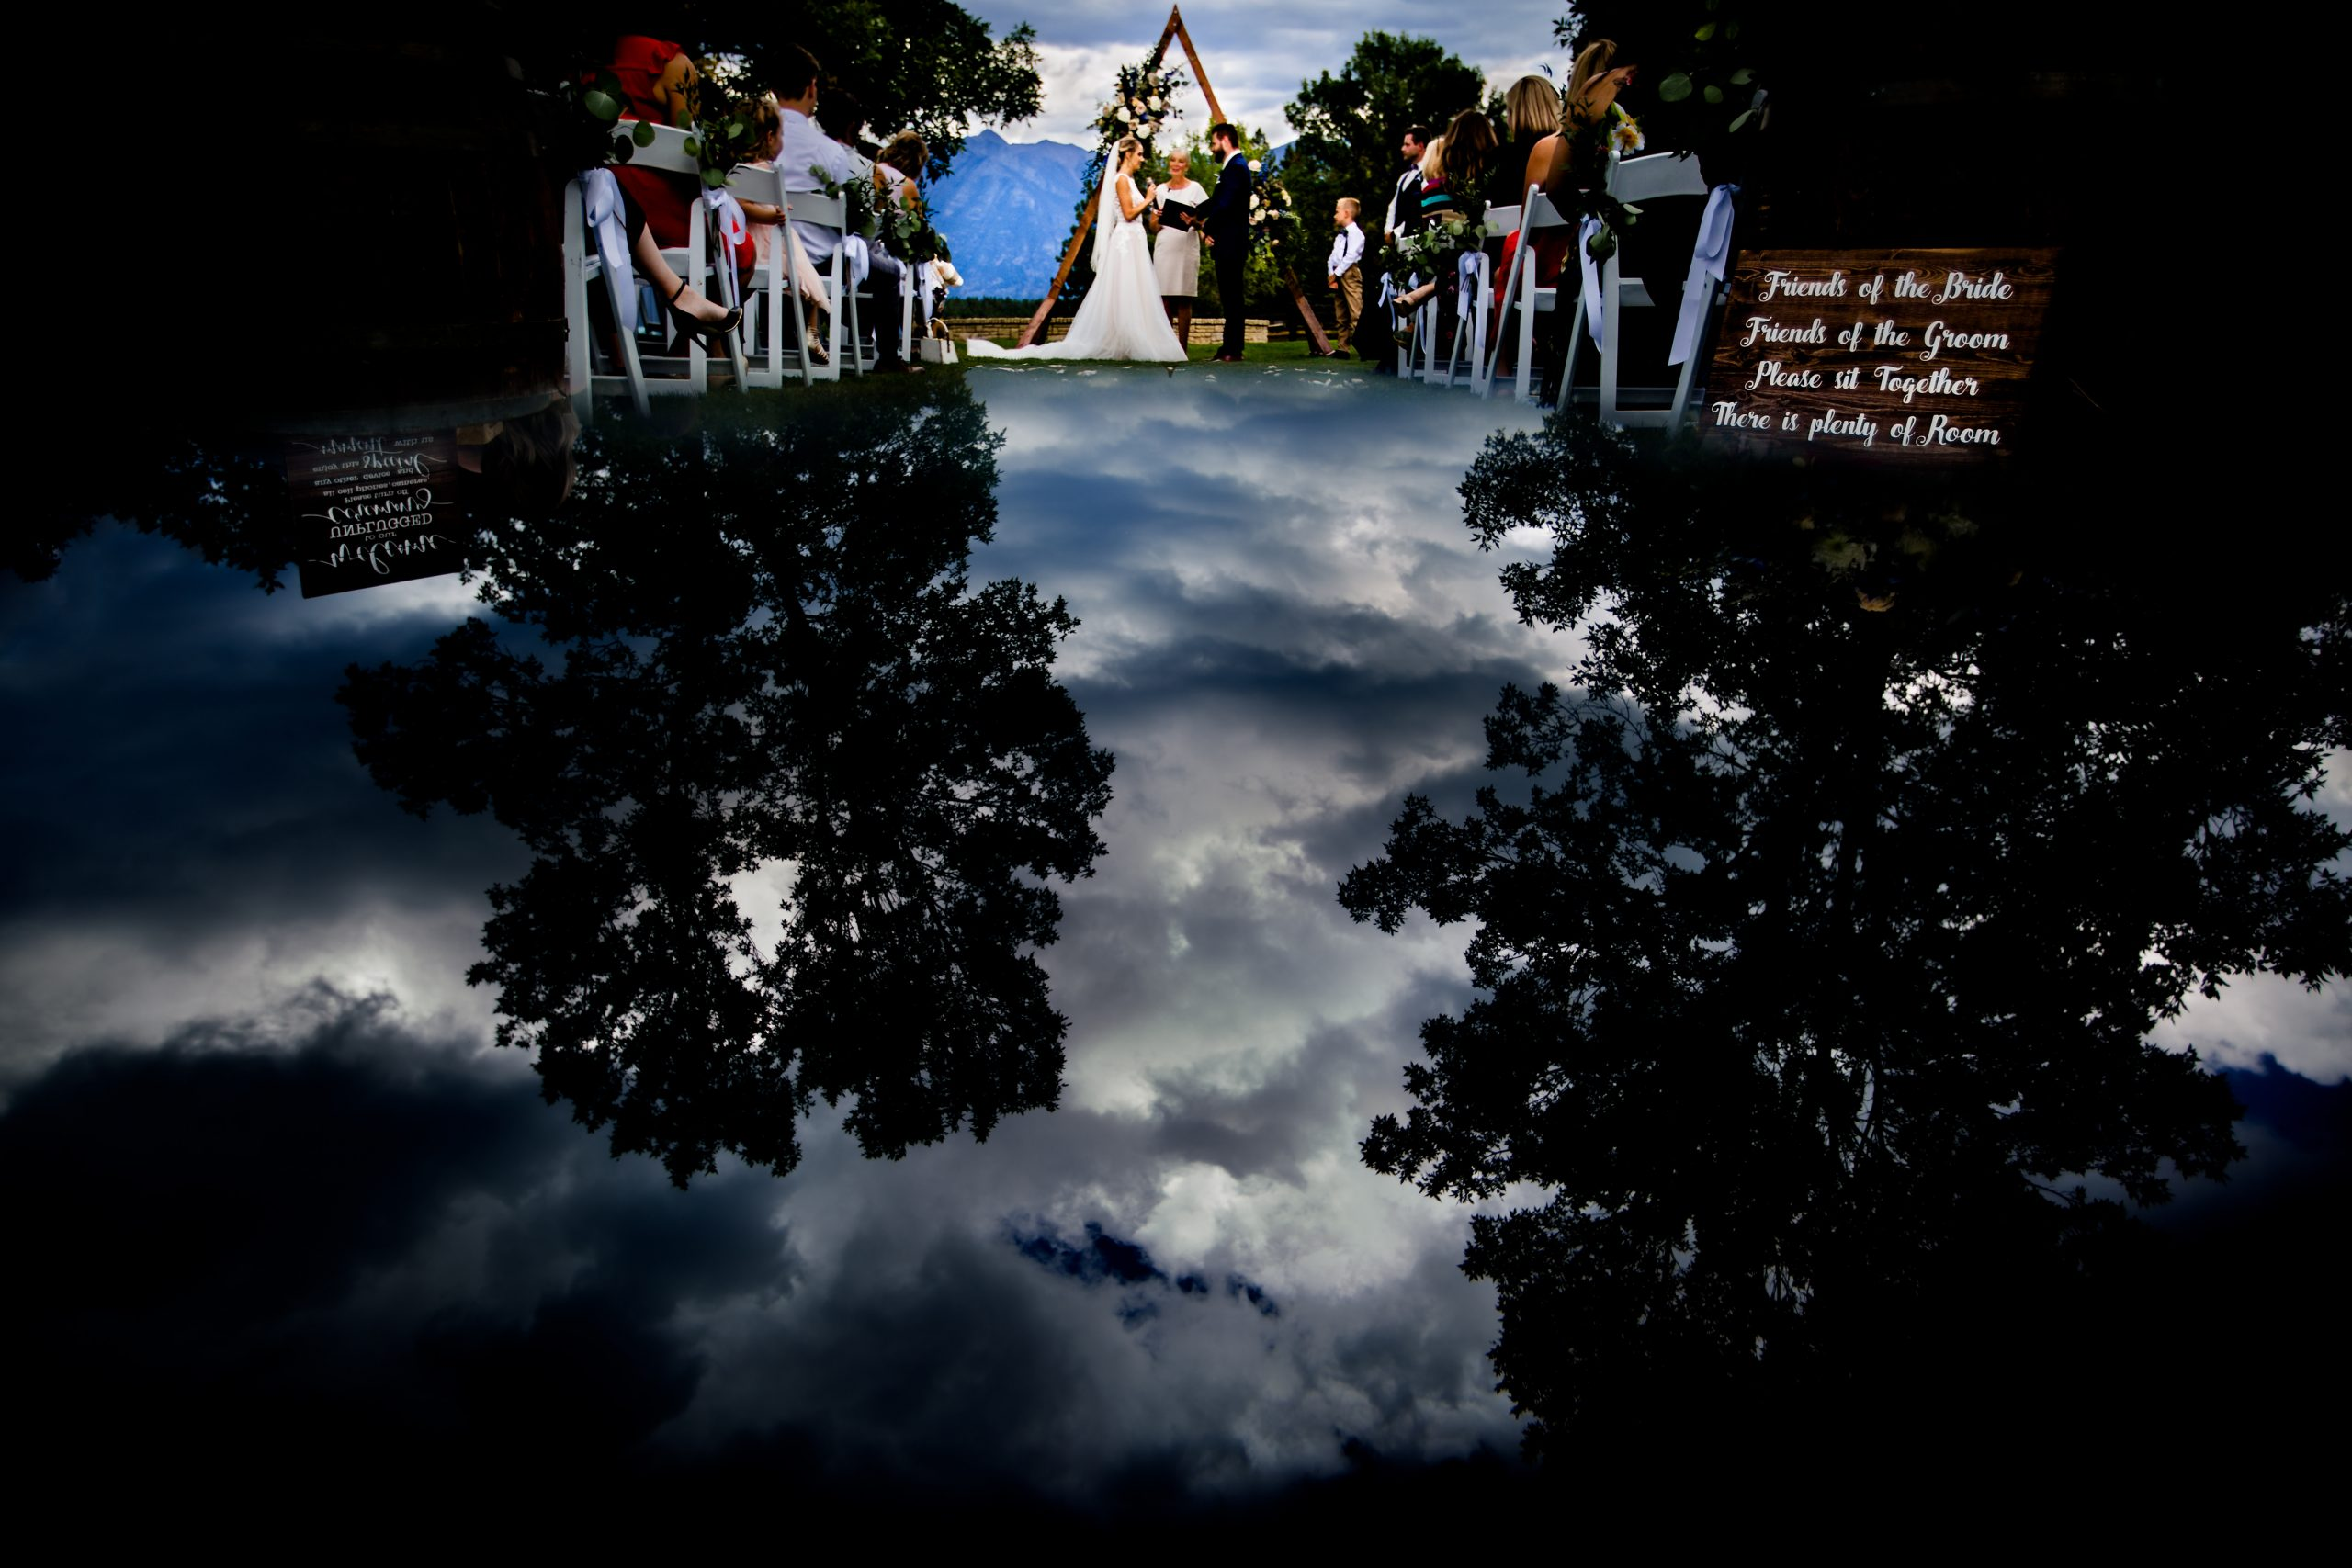 Sky and trees are reflected on a couple's wedding ceremony.